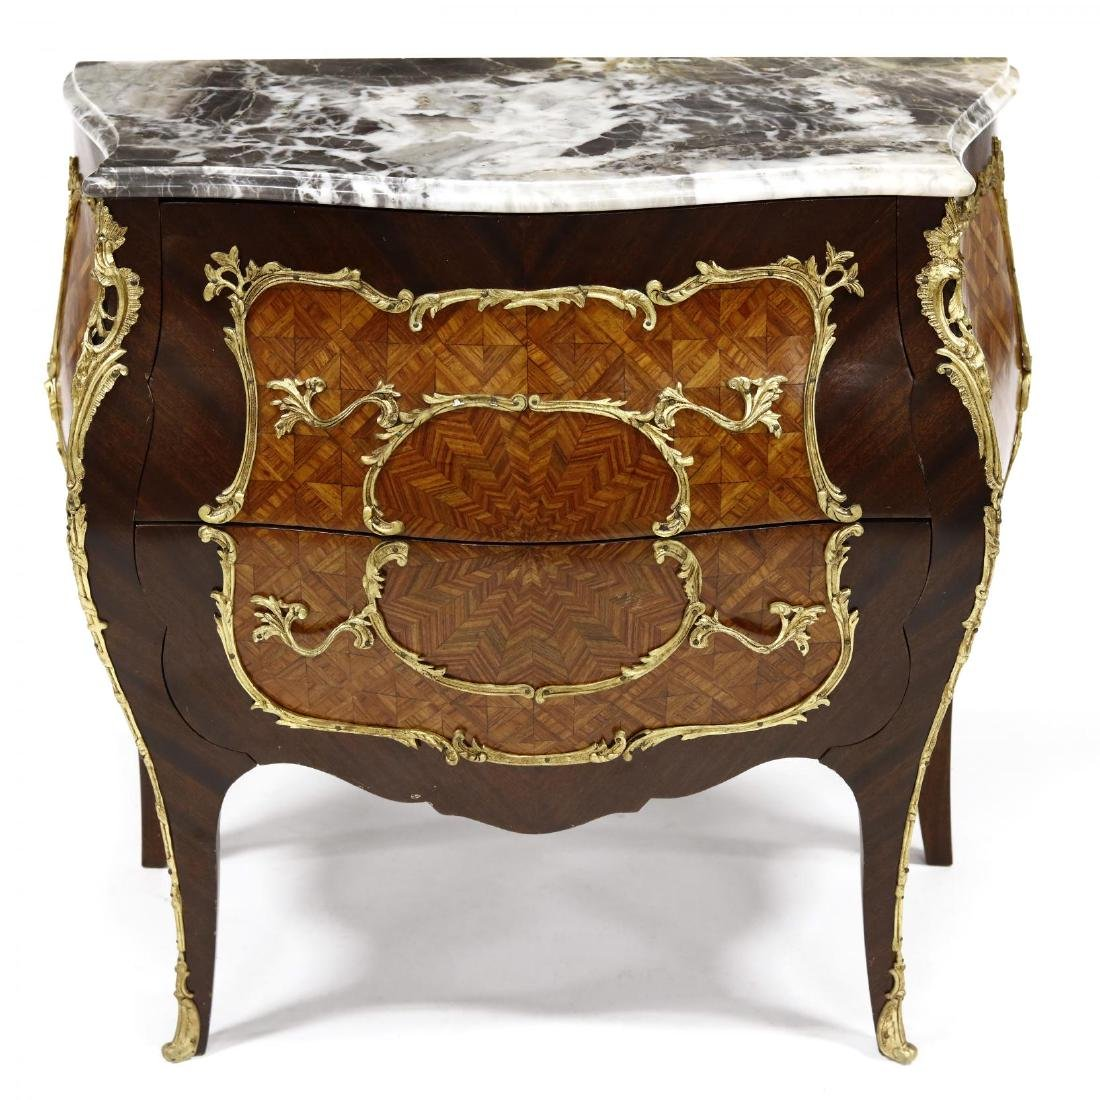 Louis XV Style Marble Top Parquetry Inlaid Commode - 2